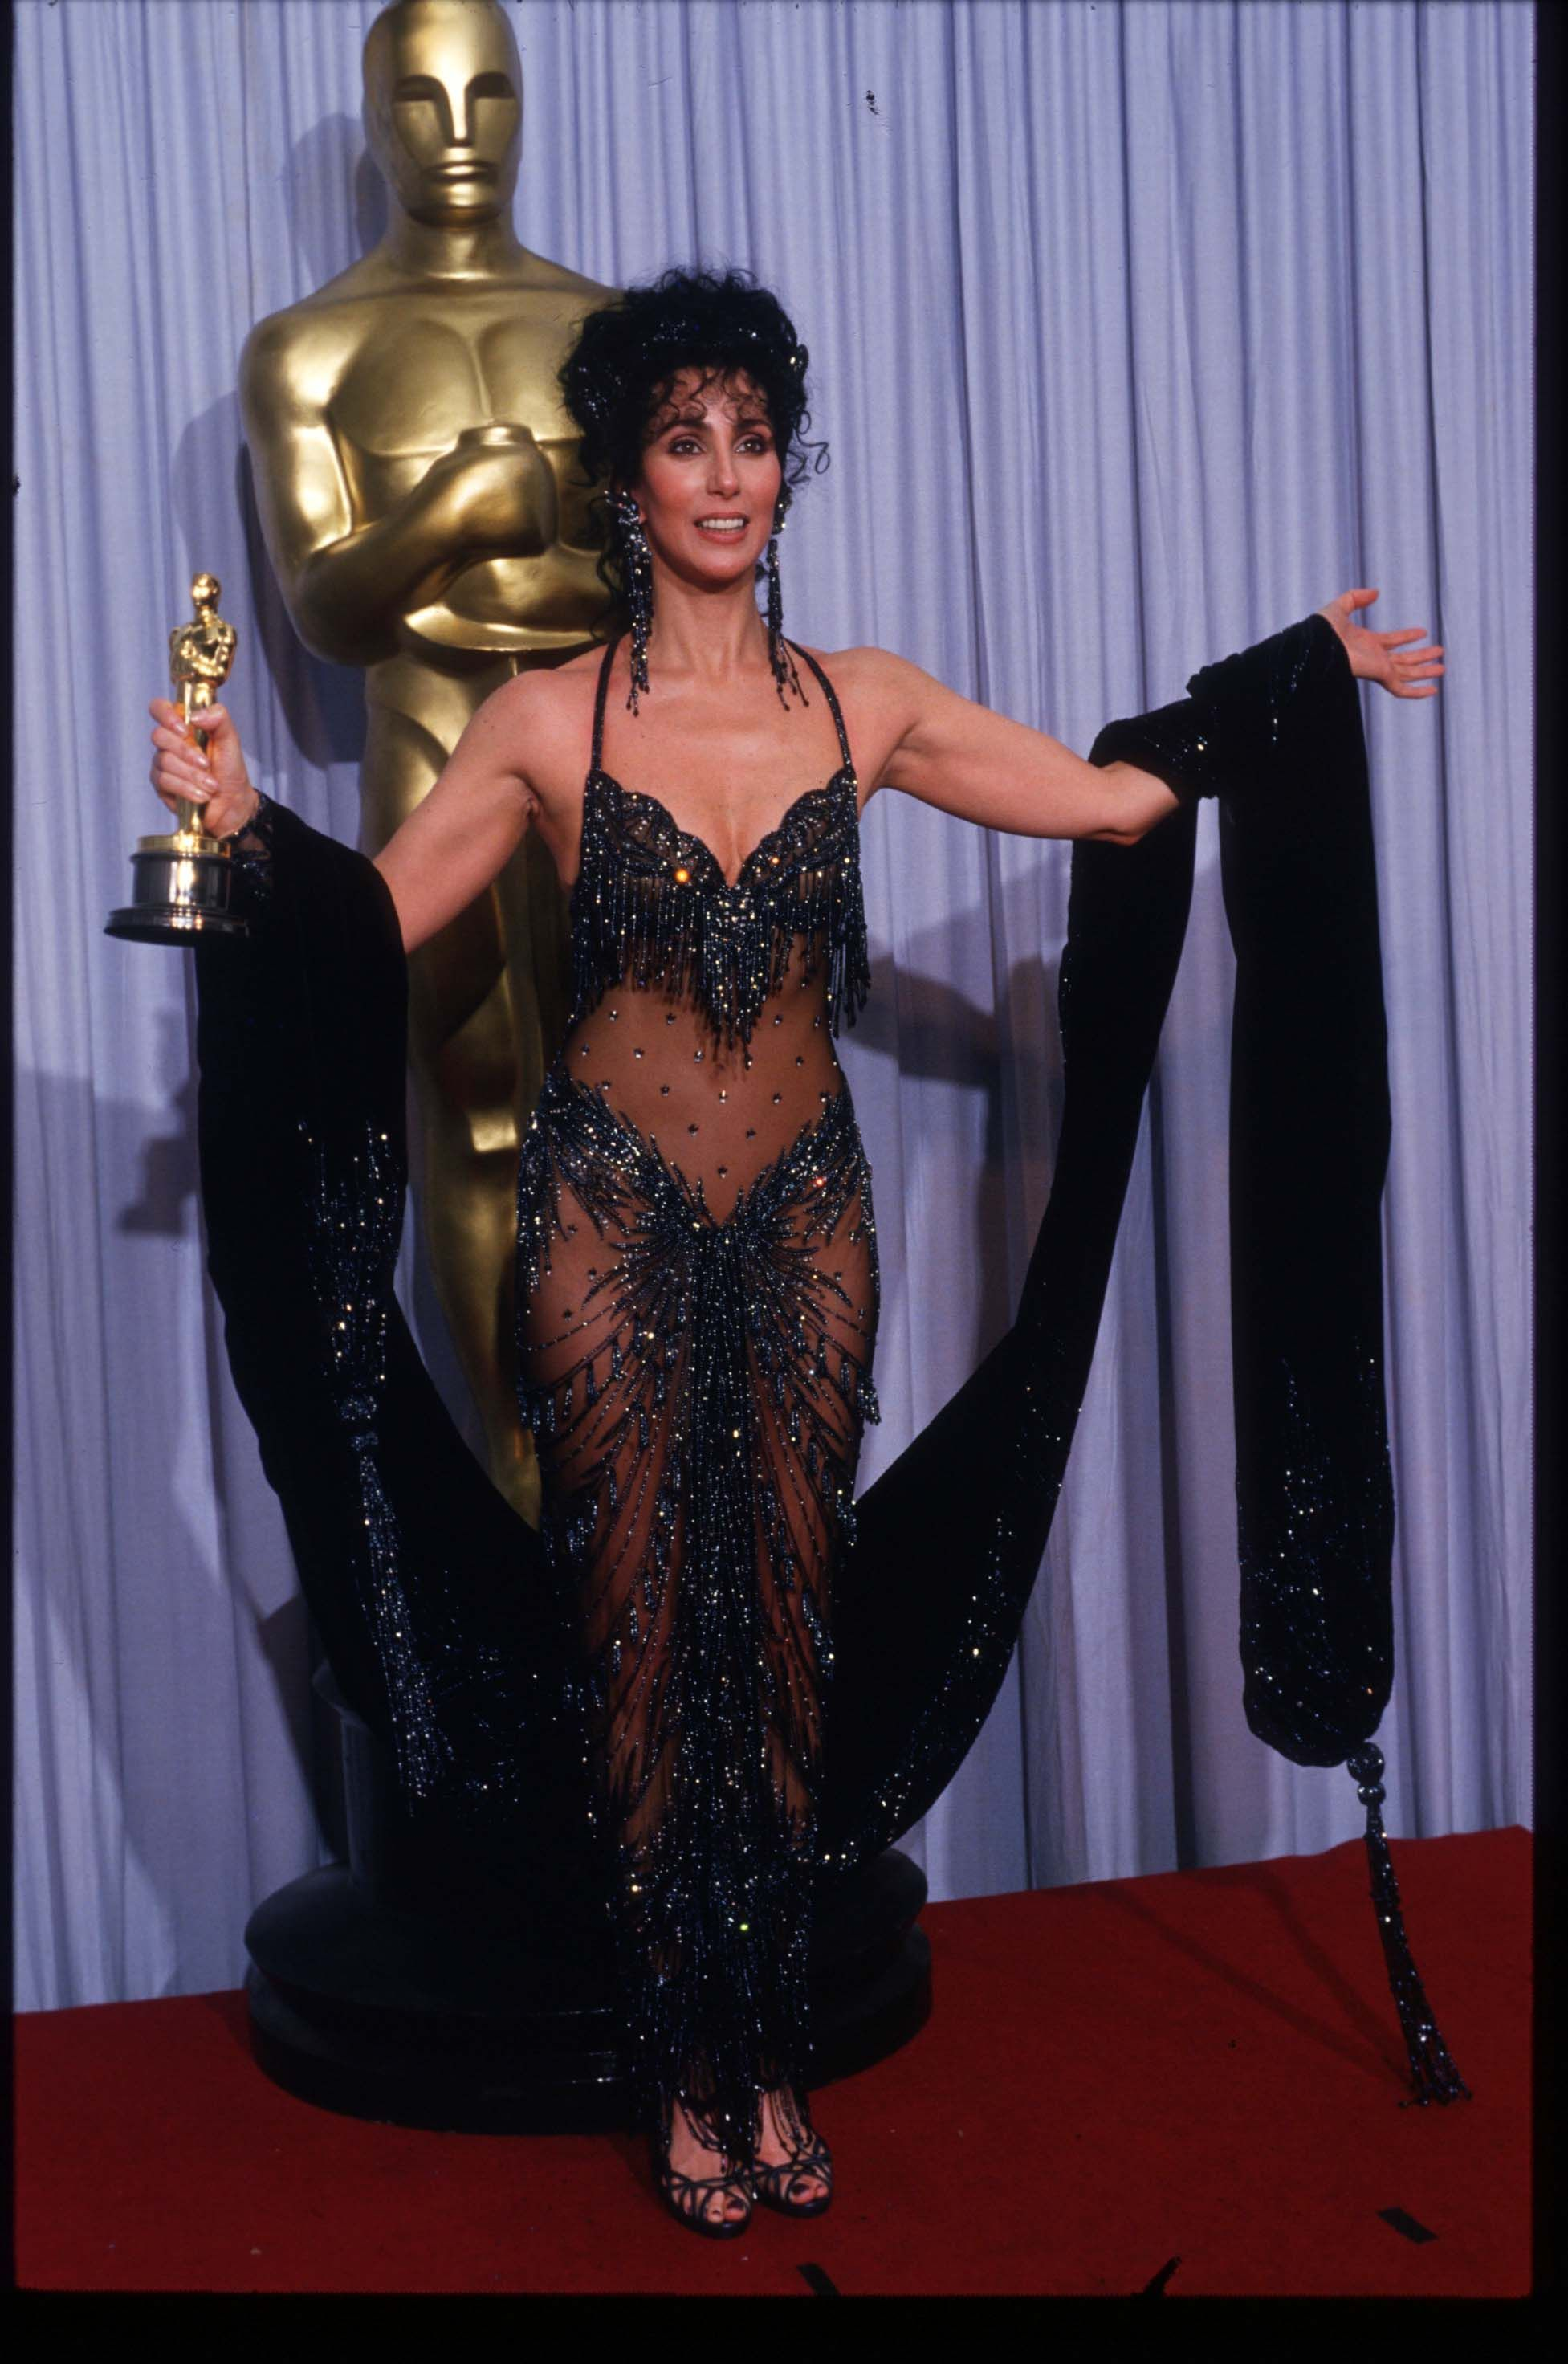 The Most Provocative Oscars Looks of All Time